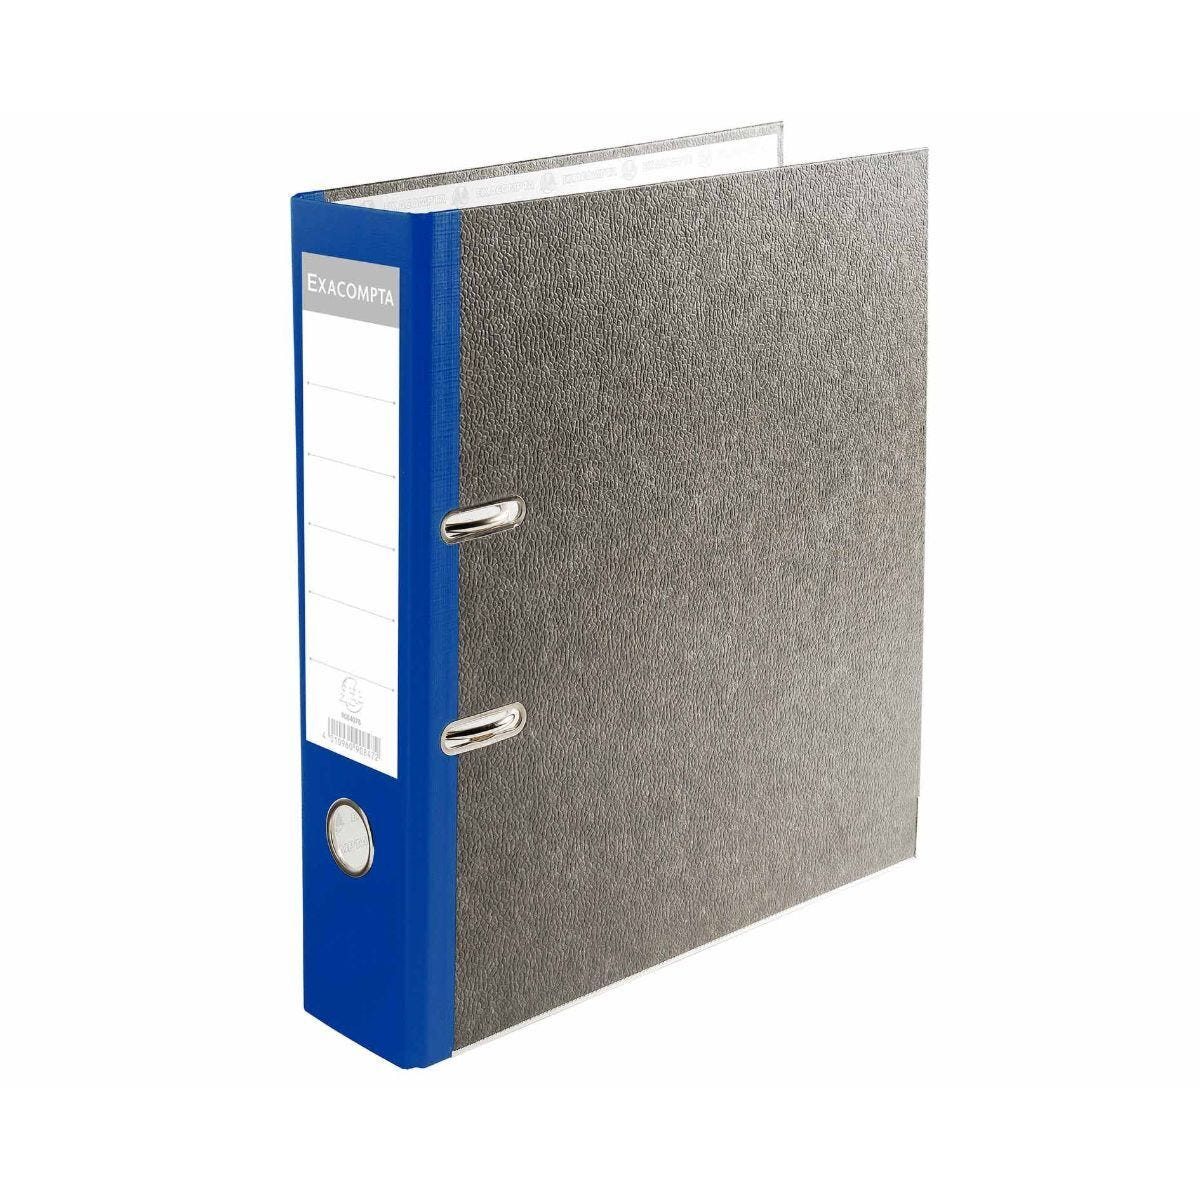 Exacompta PremTouch Lever Arch File A4 80mm Pack of 20 Blue